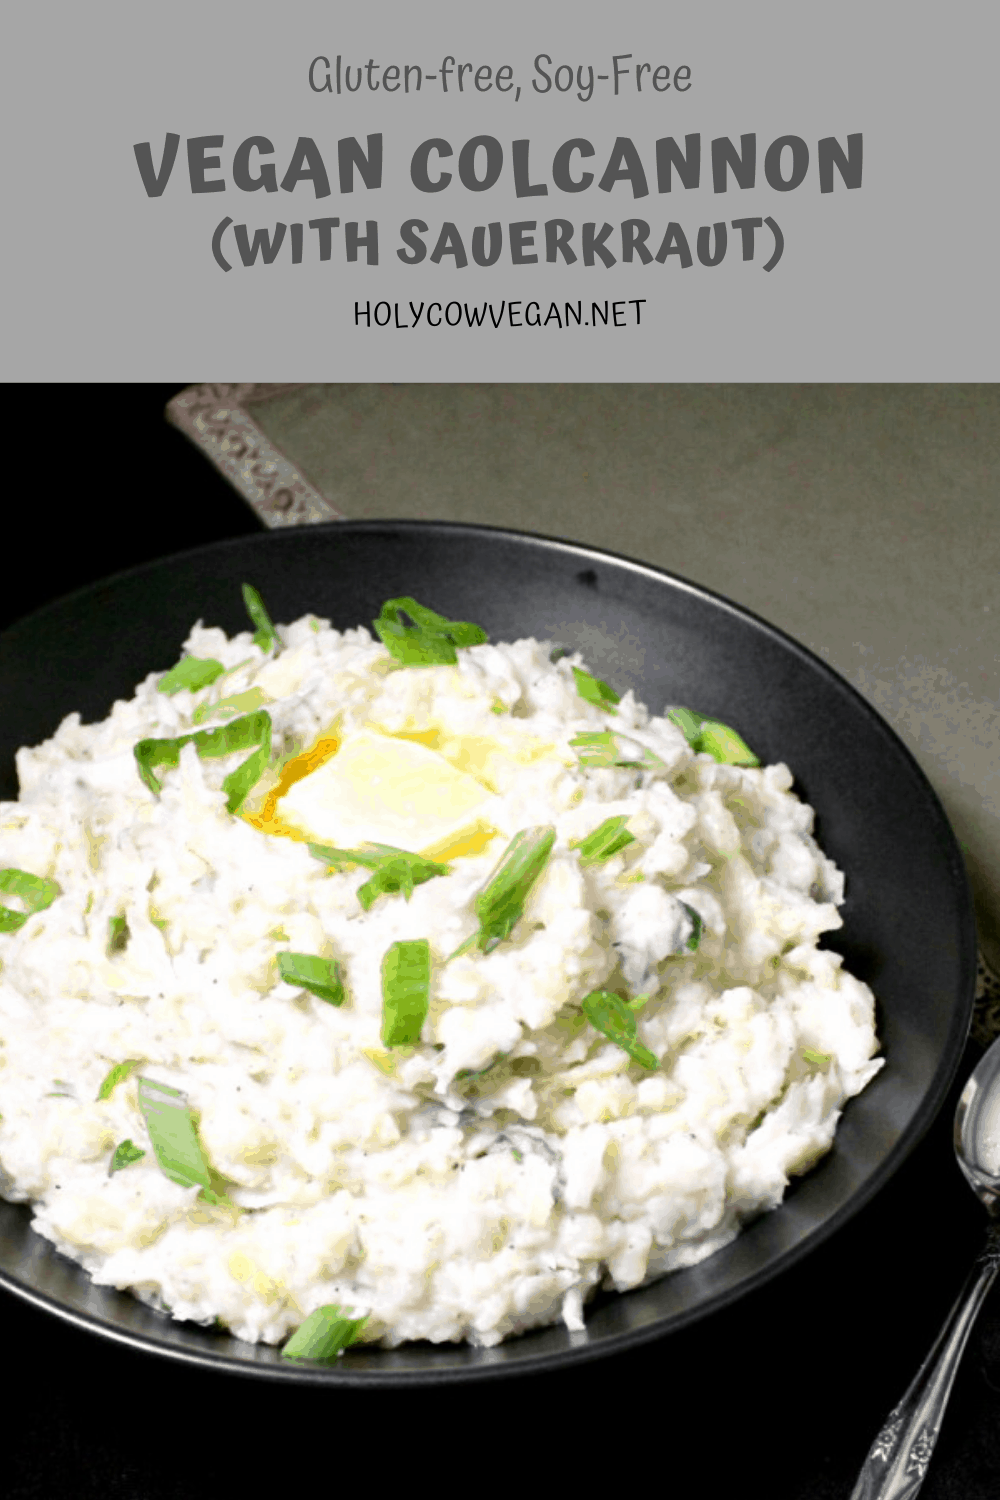 Put a tasty twist on your Vegan Colcannon this St. Patrick's Day by stirring in a spot of sauerkraut into this creamy potato mash. You'll be wishing you made more. A gluten-free, soy-free recipe, can be nut-free.